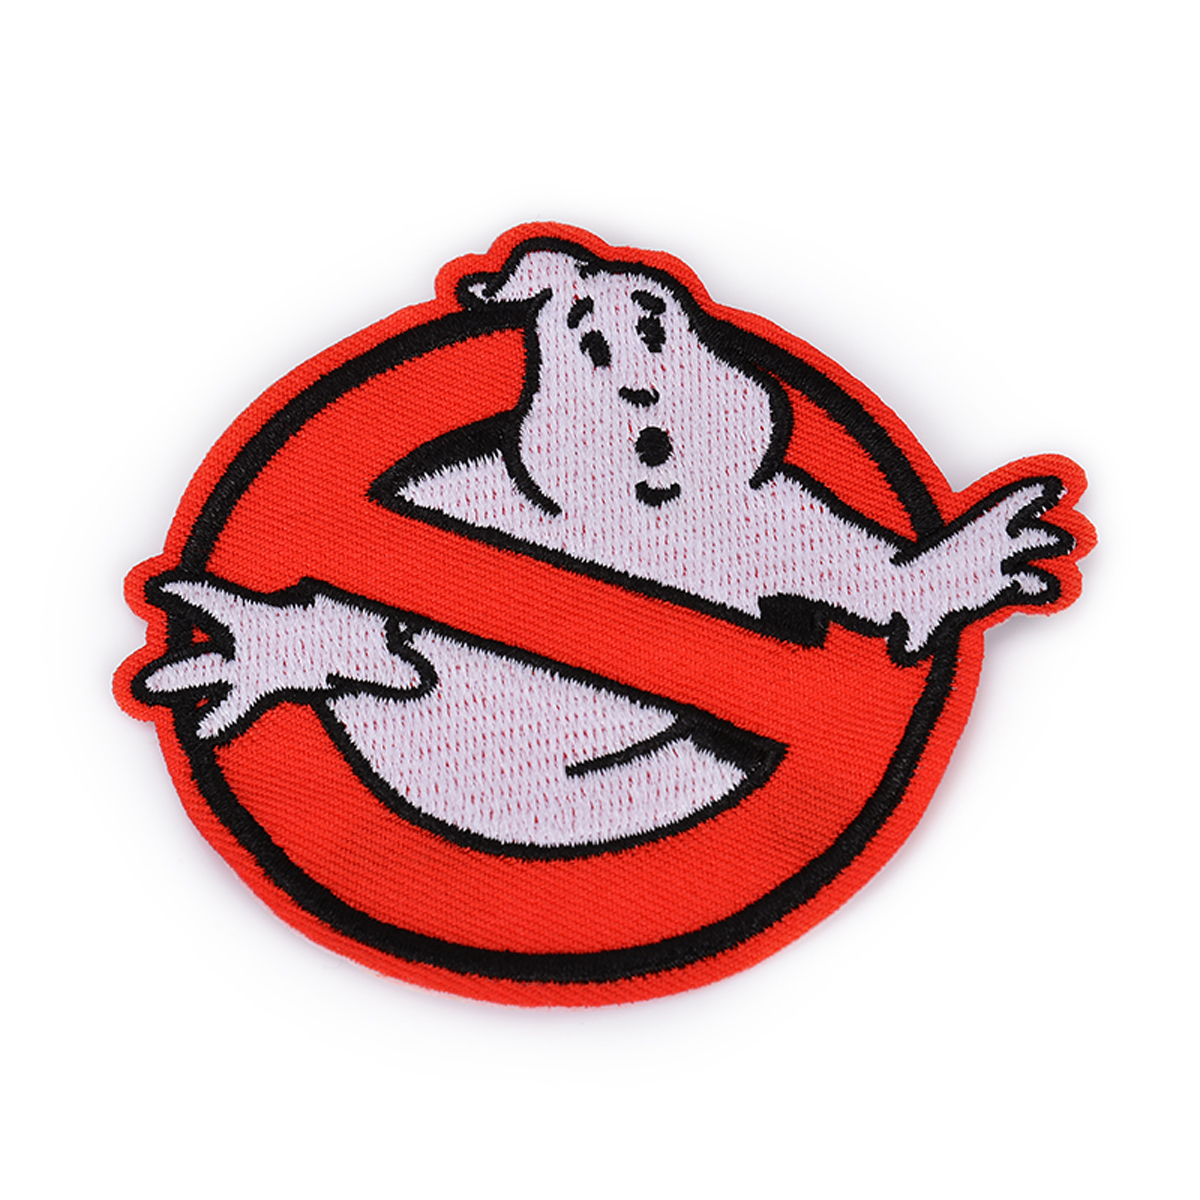 Embroidered GhostBUsters Cartoon  Iron-On //Sew On Patch//Badge//Logo